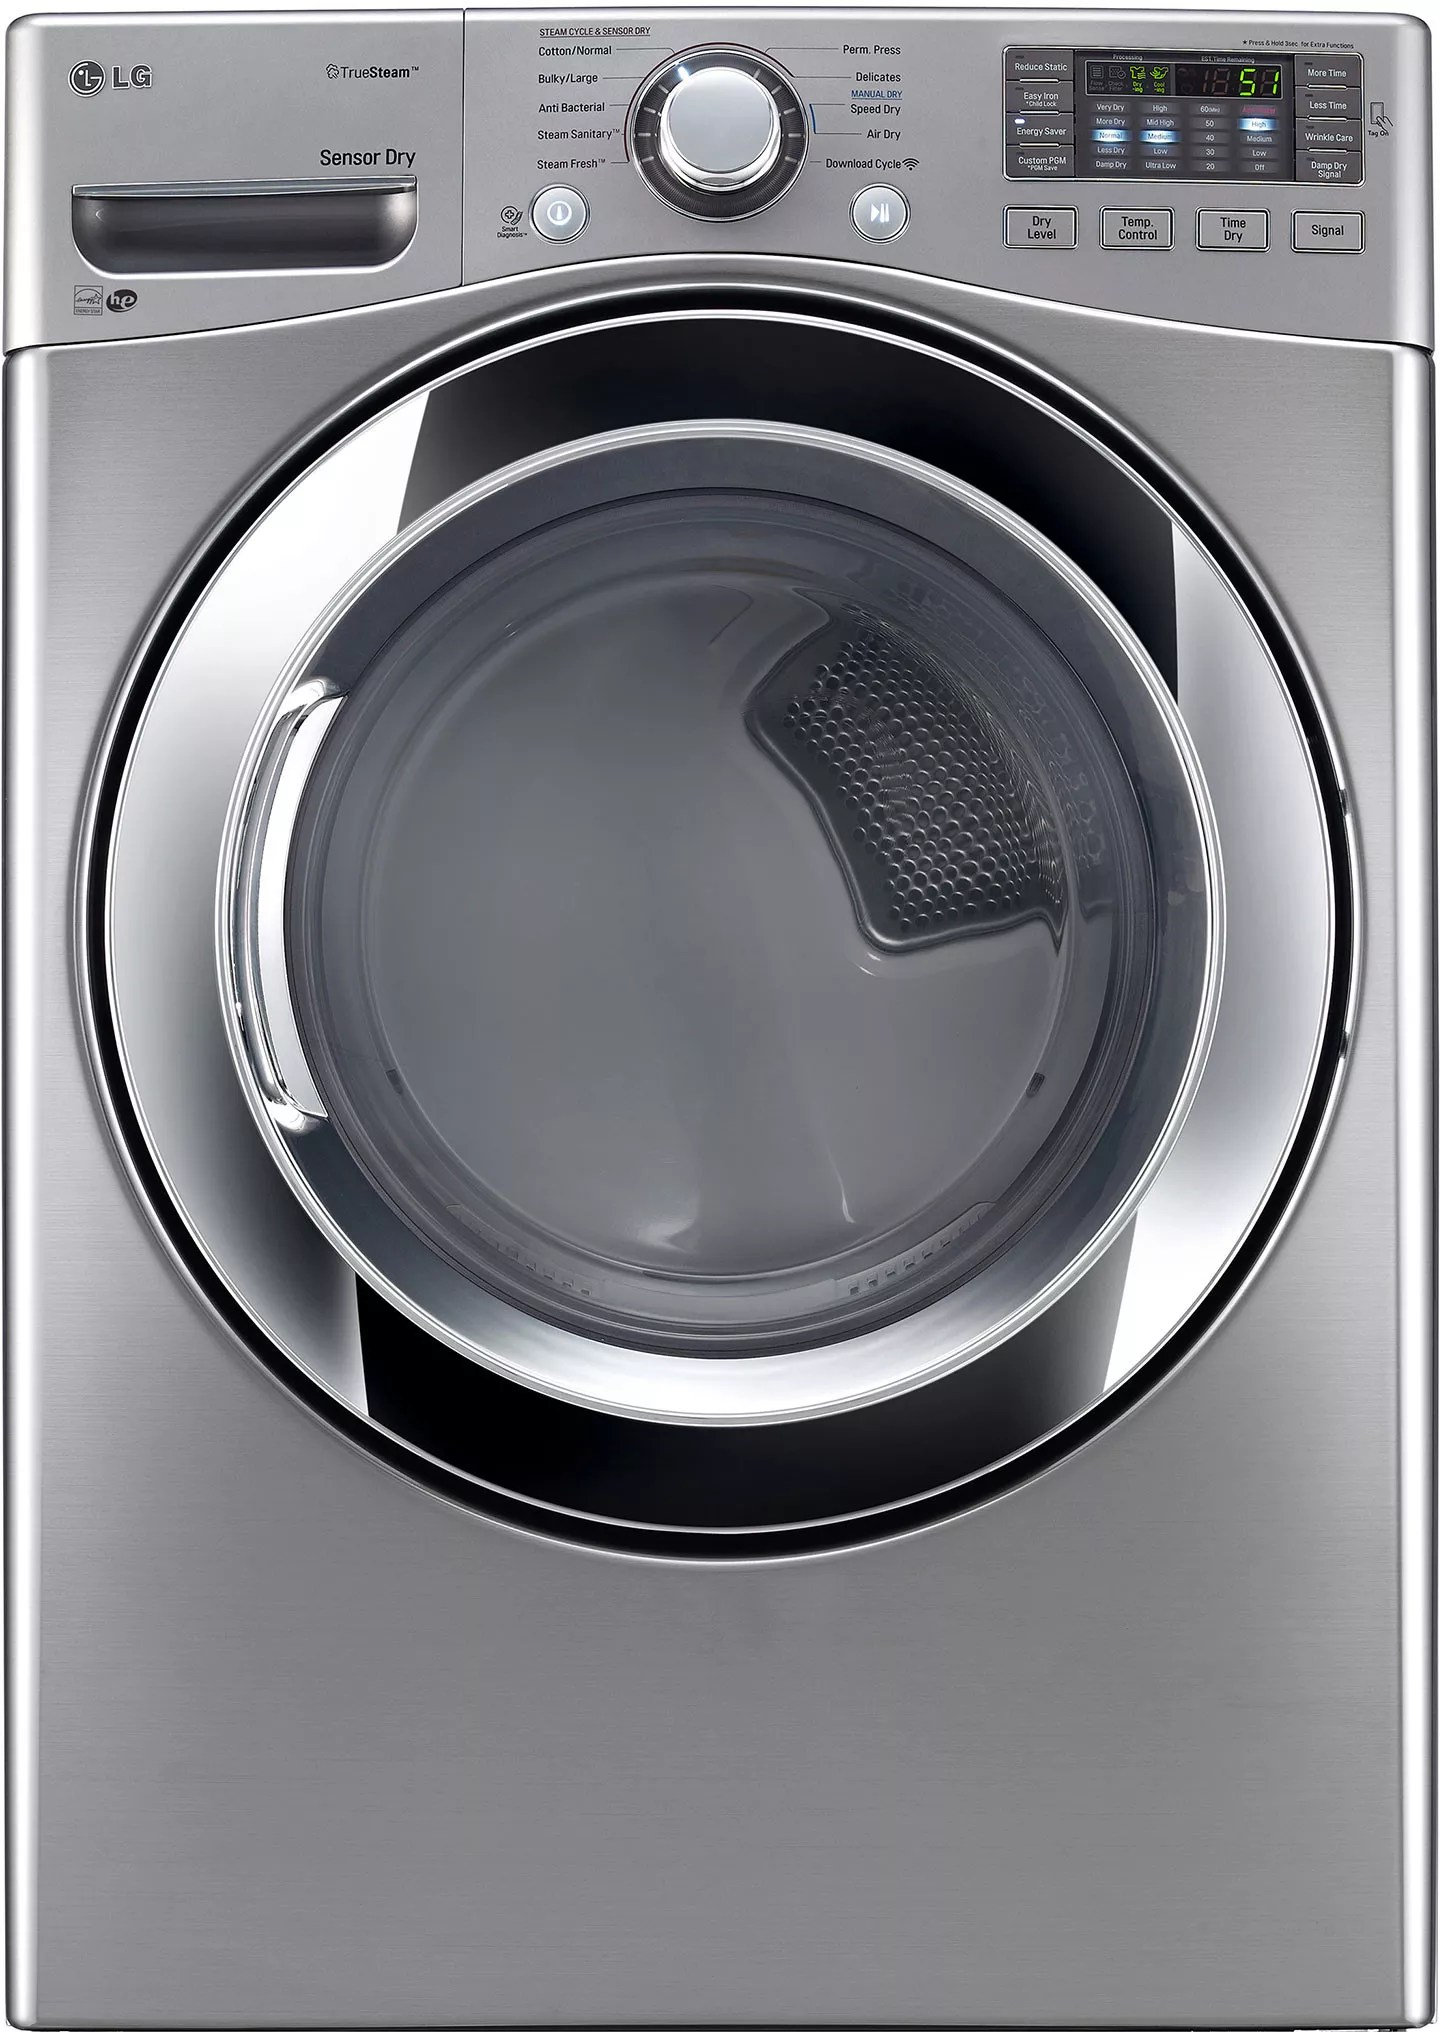 LG WM3670HVA 27 Inch 45 cu ft Front Load Washer with Steam Smart ThinQ WiFi NFC TagOn